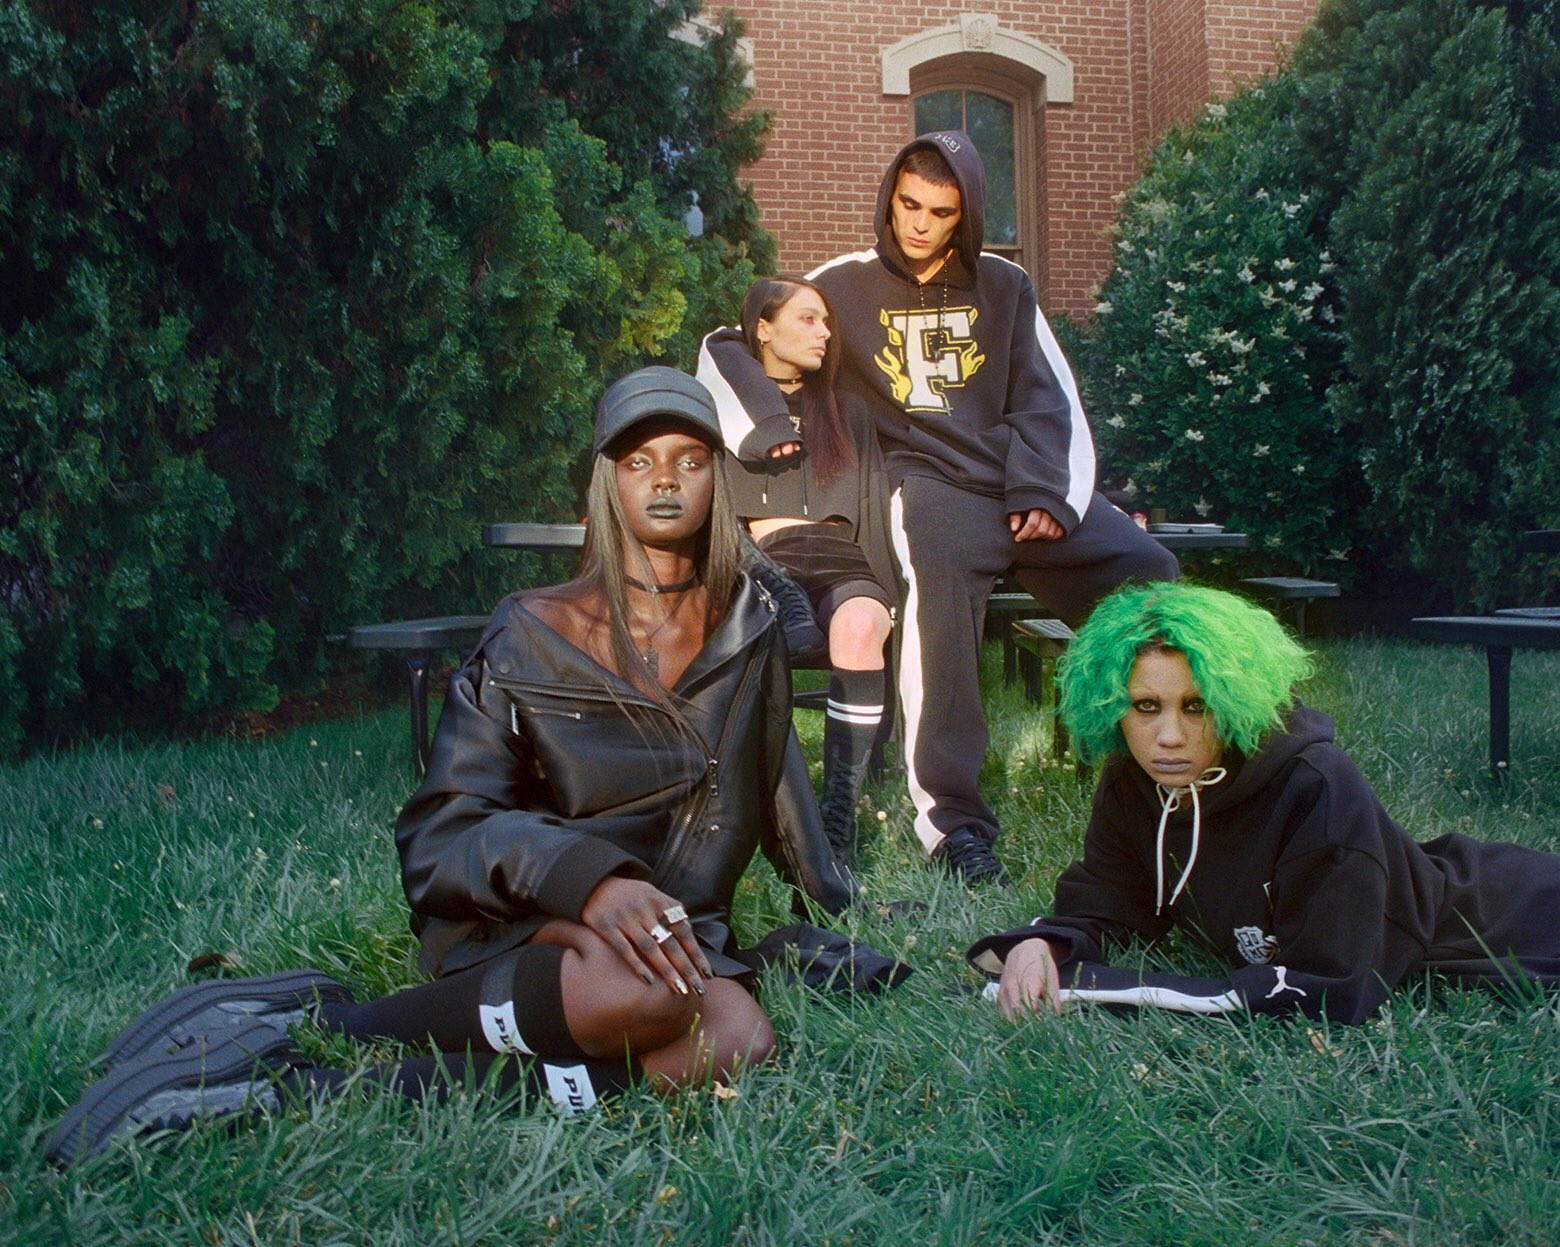 the grass is greener on the FENTY side. Shop the Fall @FENTYxPUMA Collection now! https://t.co/ptA1gkquJY https://t.co/fbvOTPR792